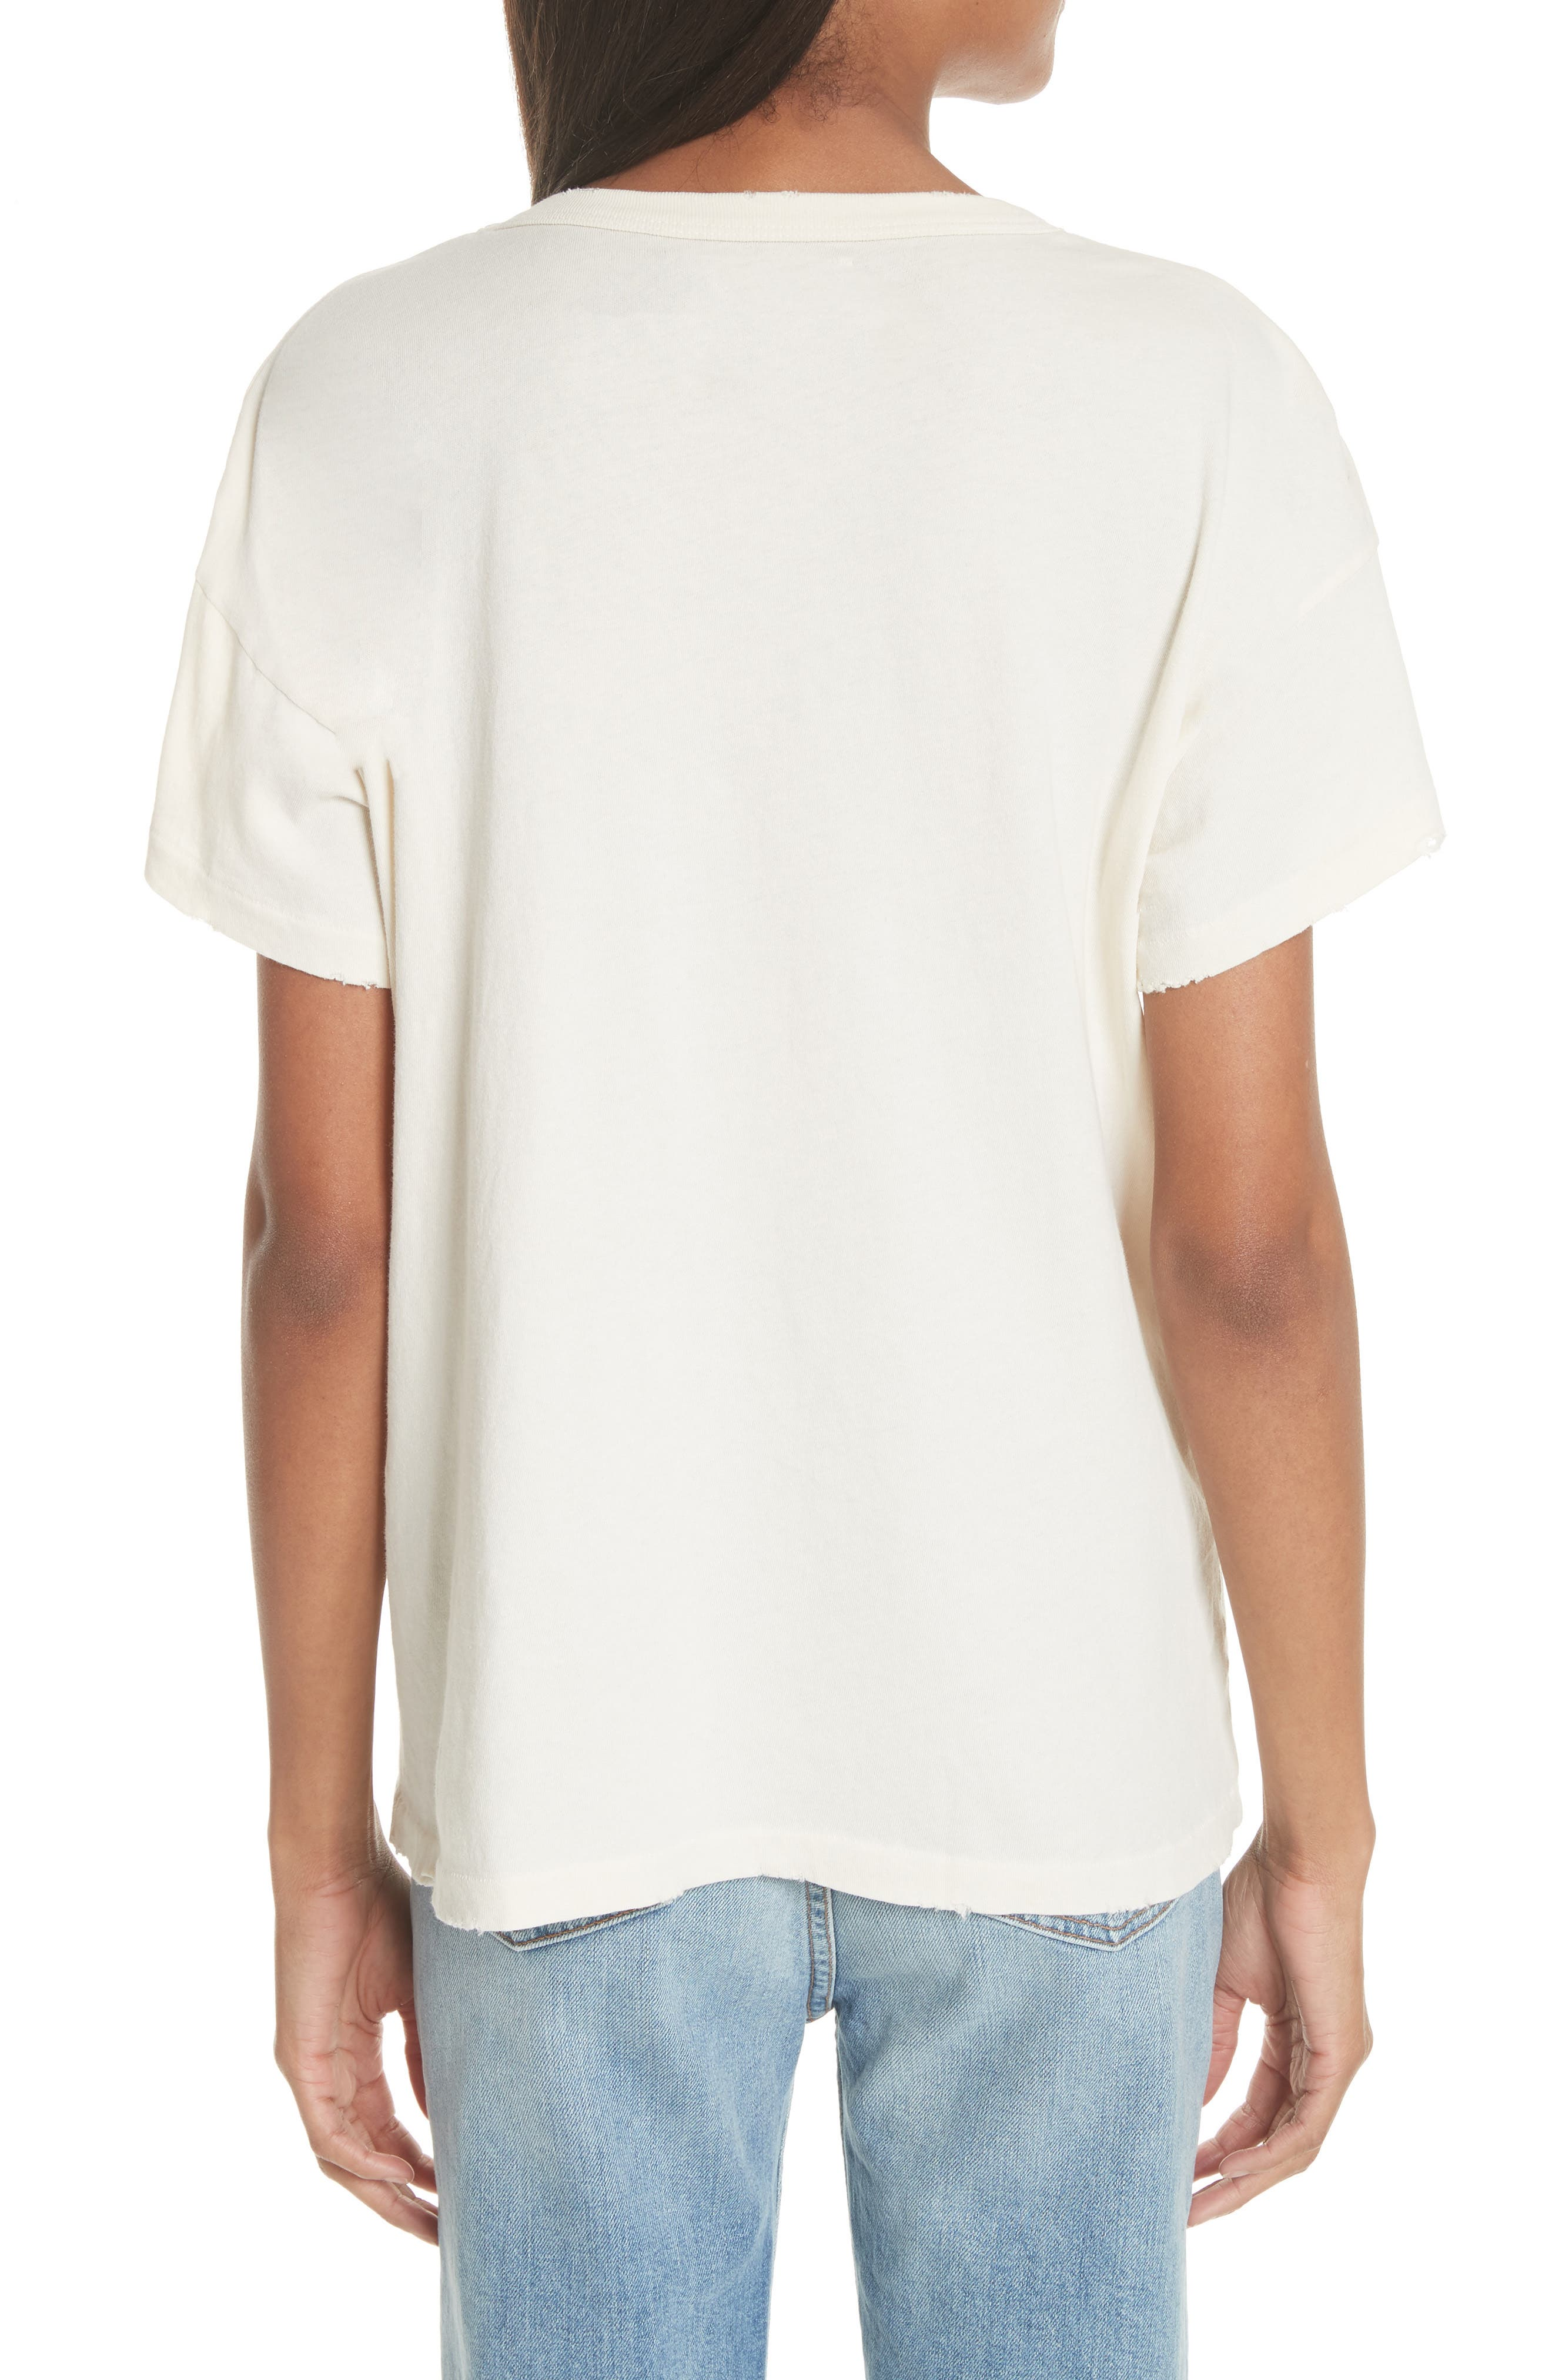 Tee,                             Alternate thumbnail 2, color,                             Washed White